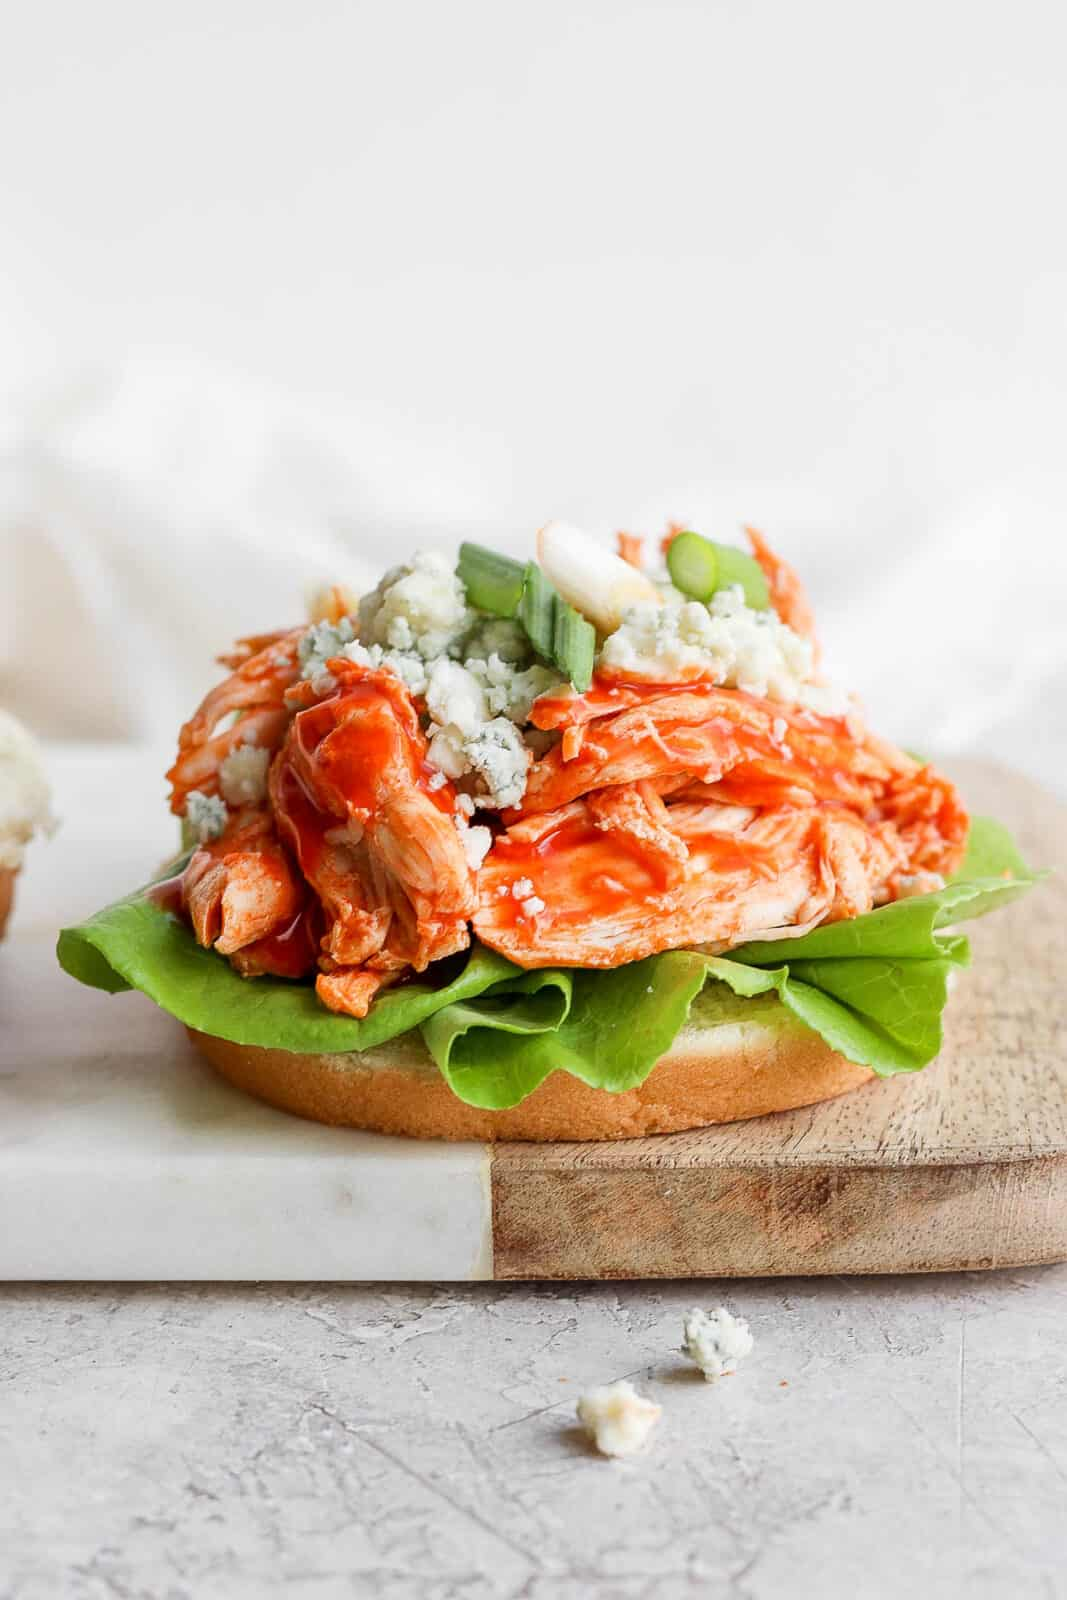 A buffalo chicken sandwich without the top bun on.